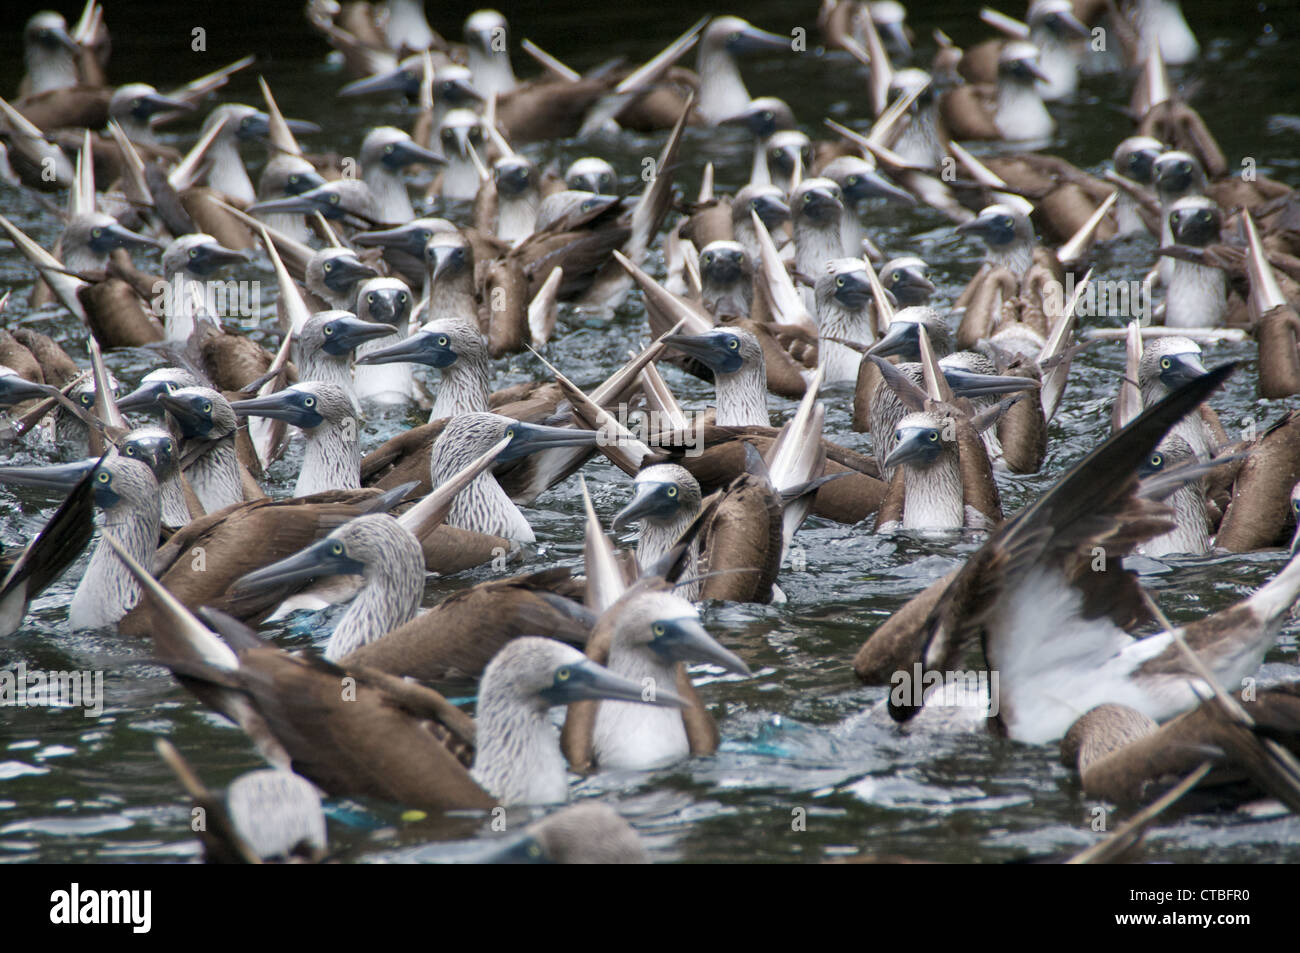 A flock of Blue-footed Boobies (Sula nebouxii) in the midst of a feeding frenzy in a cove off of Santa Cruz, Galapagos - Stock Image